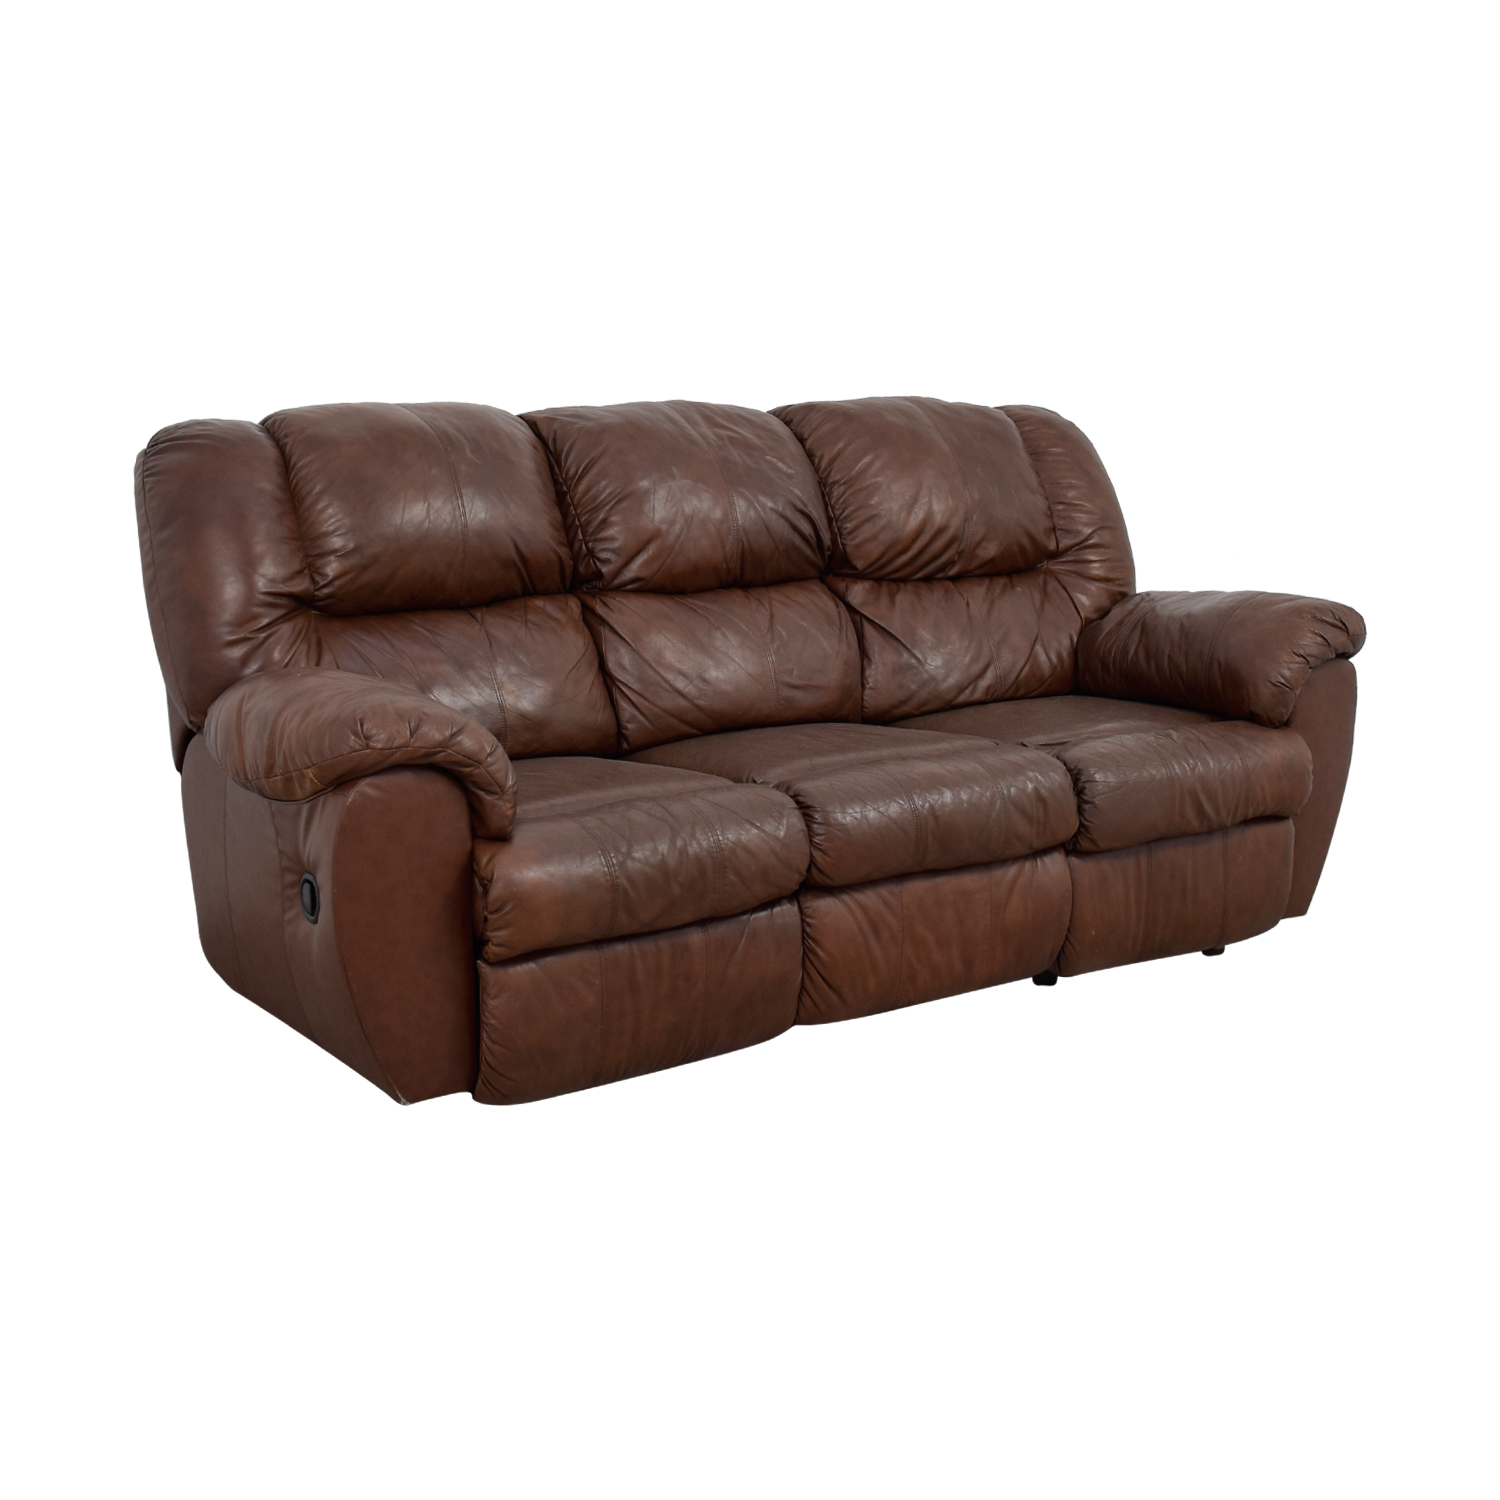 Ashley Furniture Dual Reclining Brown Leather Couch Coupon